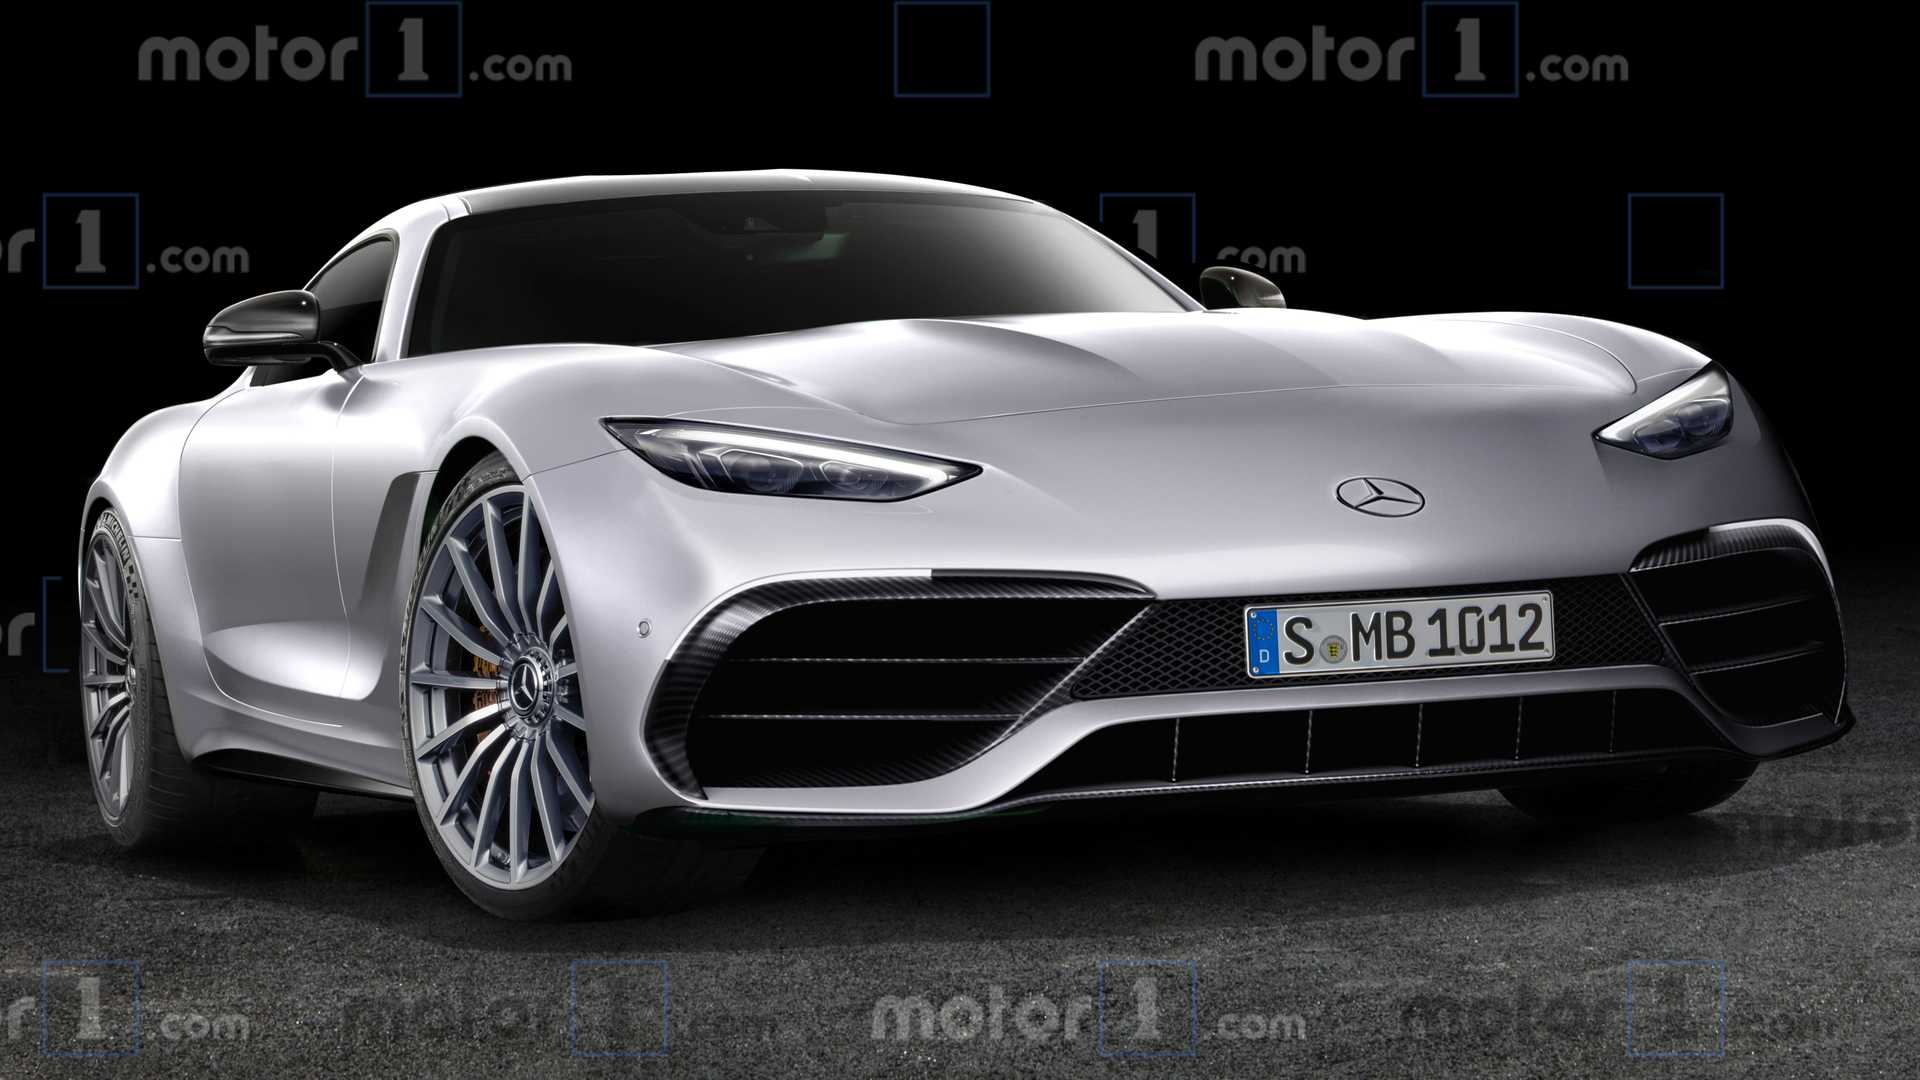 Mercedes-AMG GT Coupe rendered after Lewis Hamilton clay model